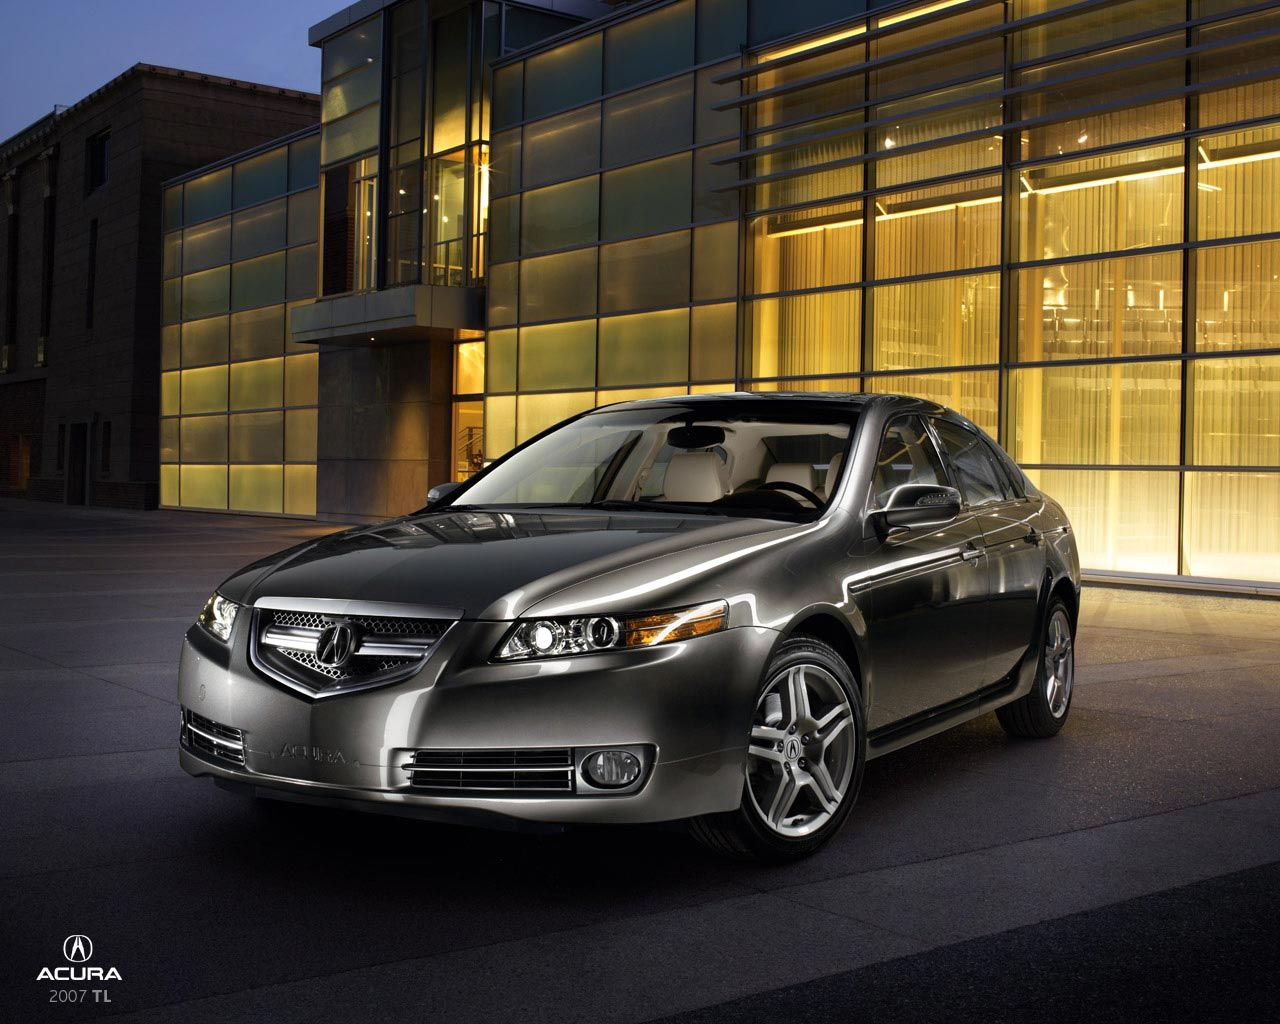 Cool Acura Tl Sedan Hd Picture Wallpaper Acura Tl Car